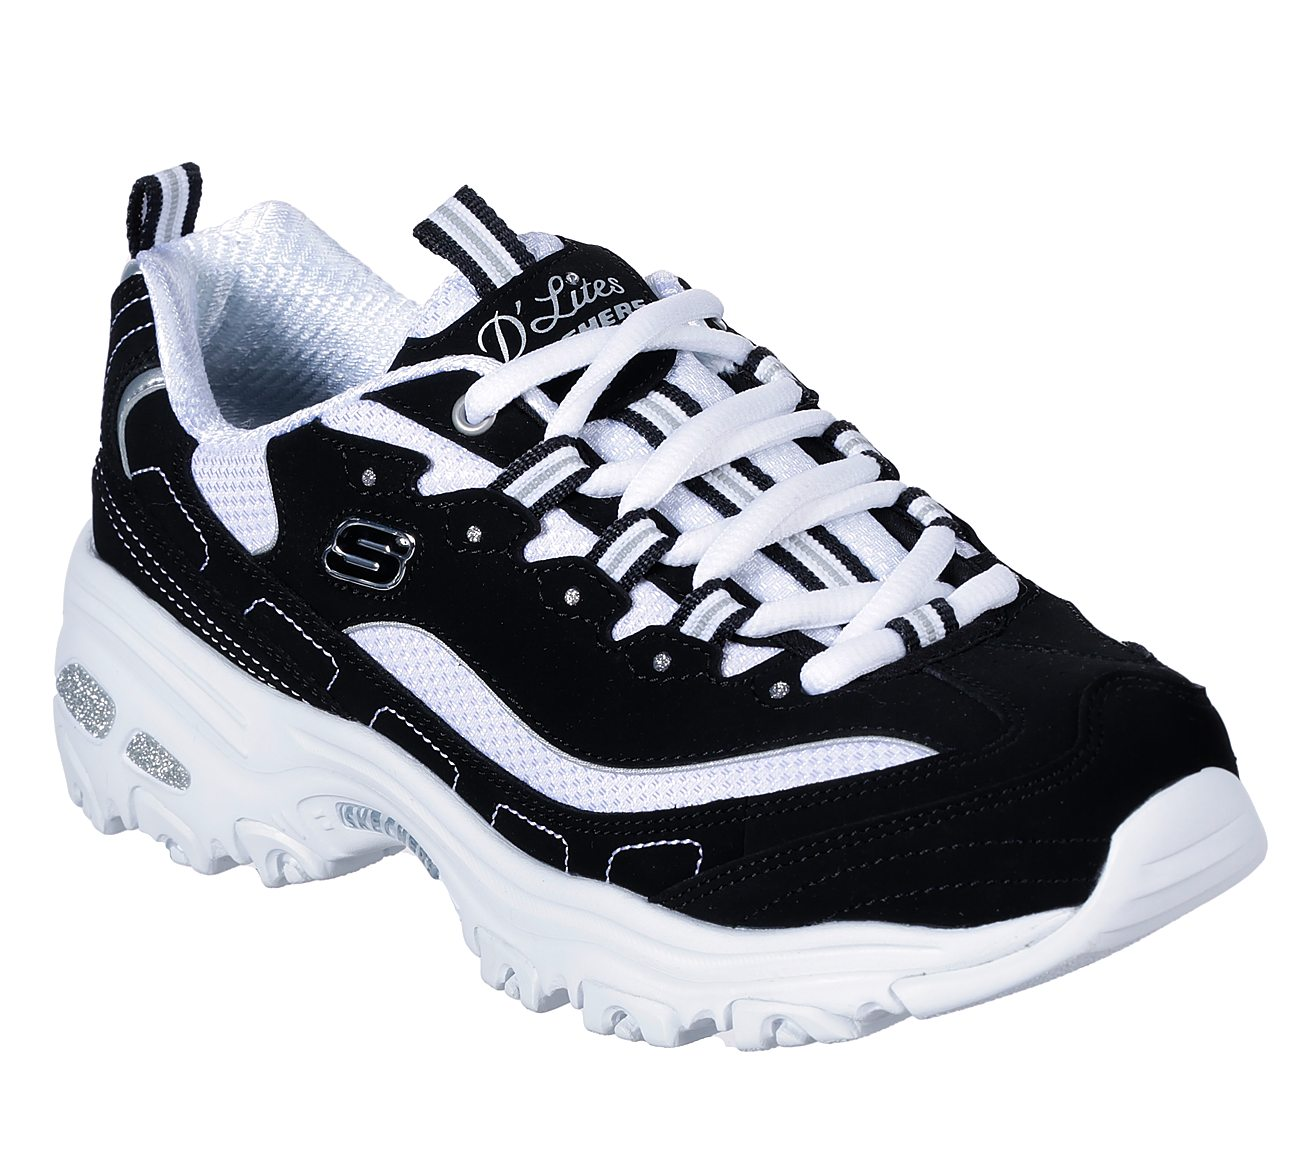 a800e2dc079 Buy SKECHERS D Lites - Biggest Fan D Lites Shoes only  70.00